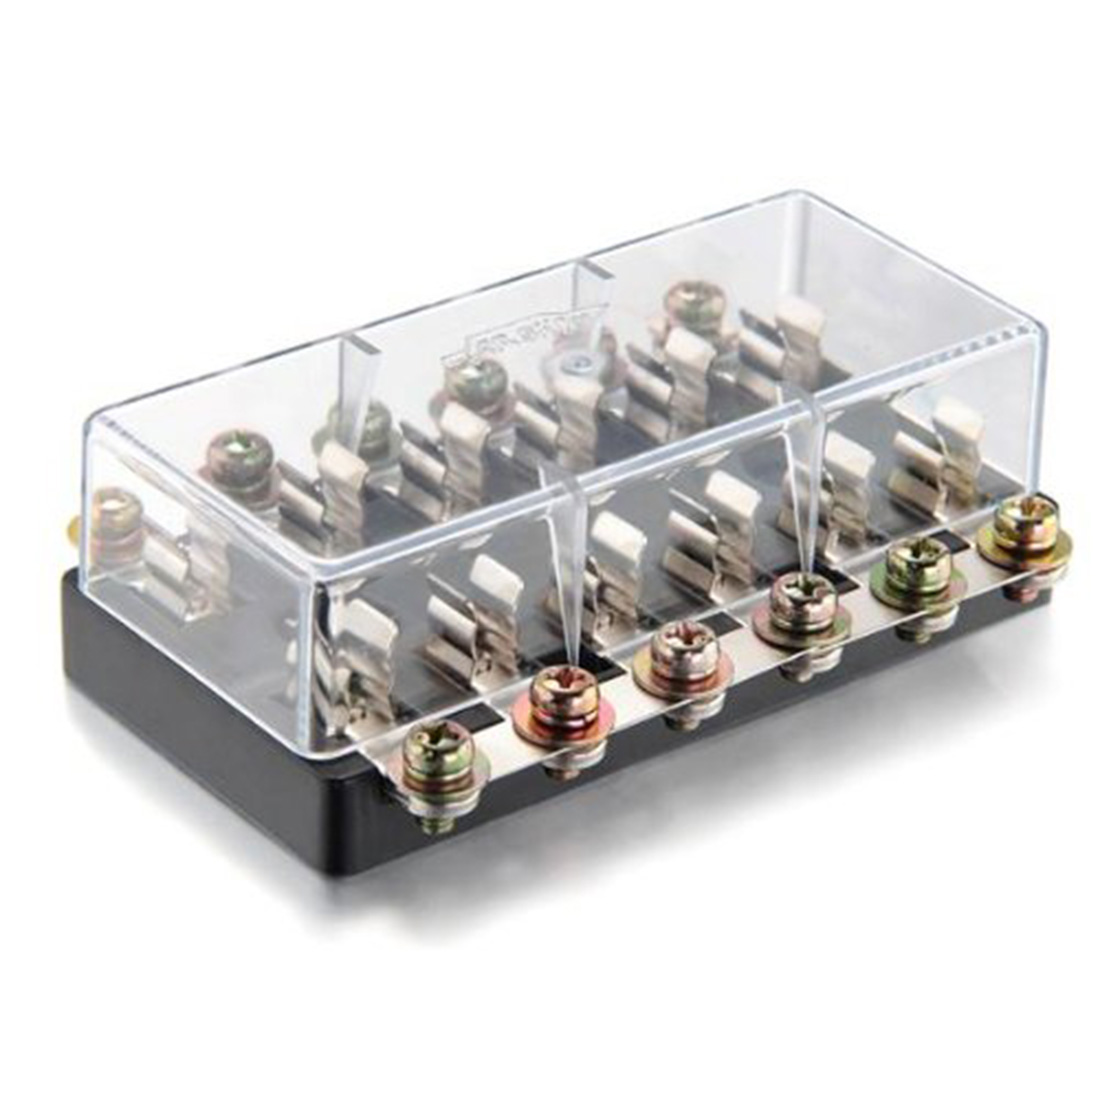 hight resolution of description 6 way fuse box suitable for agc and jso fuses 1 in marsnaska brand new universal 12v